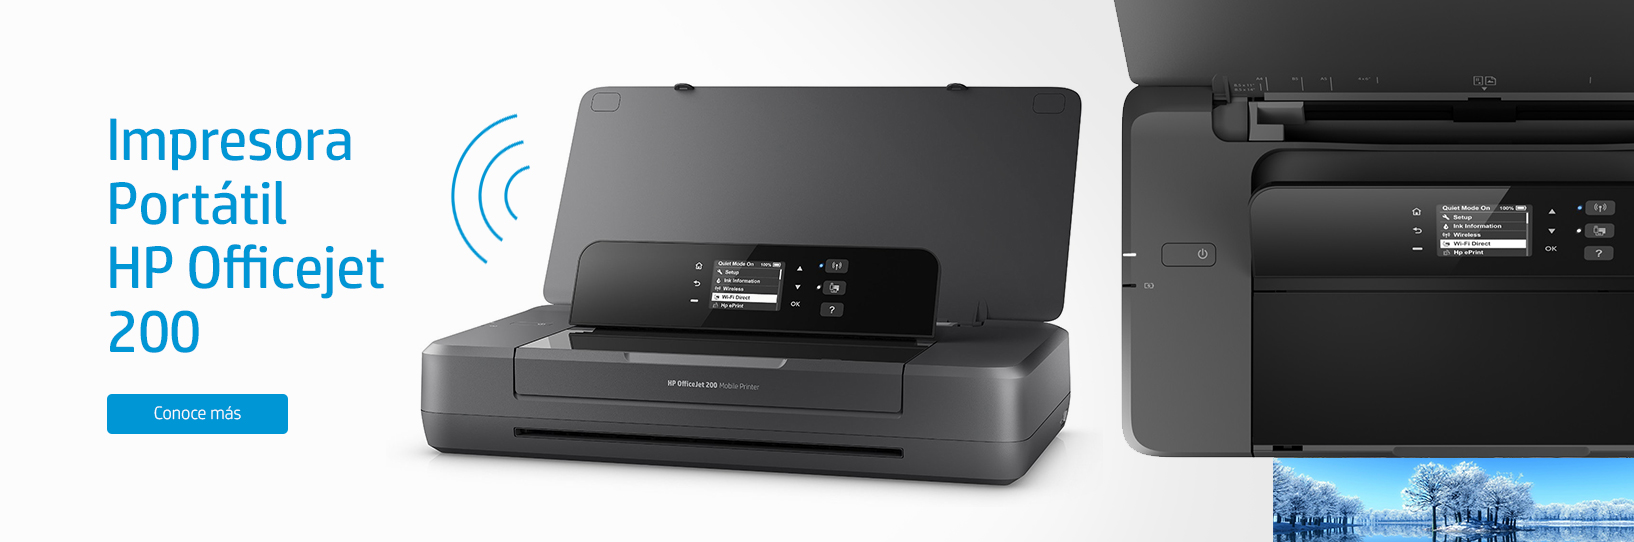 impresora-portatil-hp-officejet-200.jpg